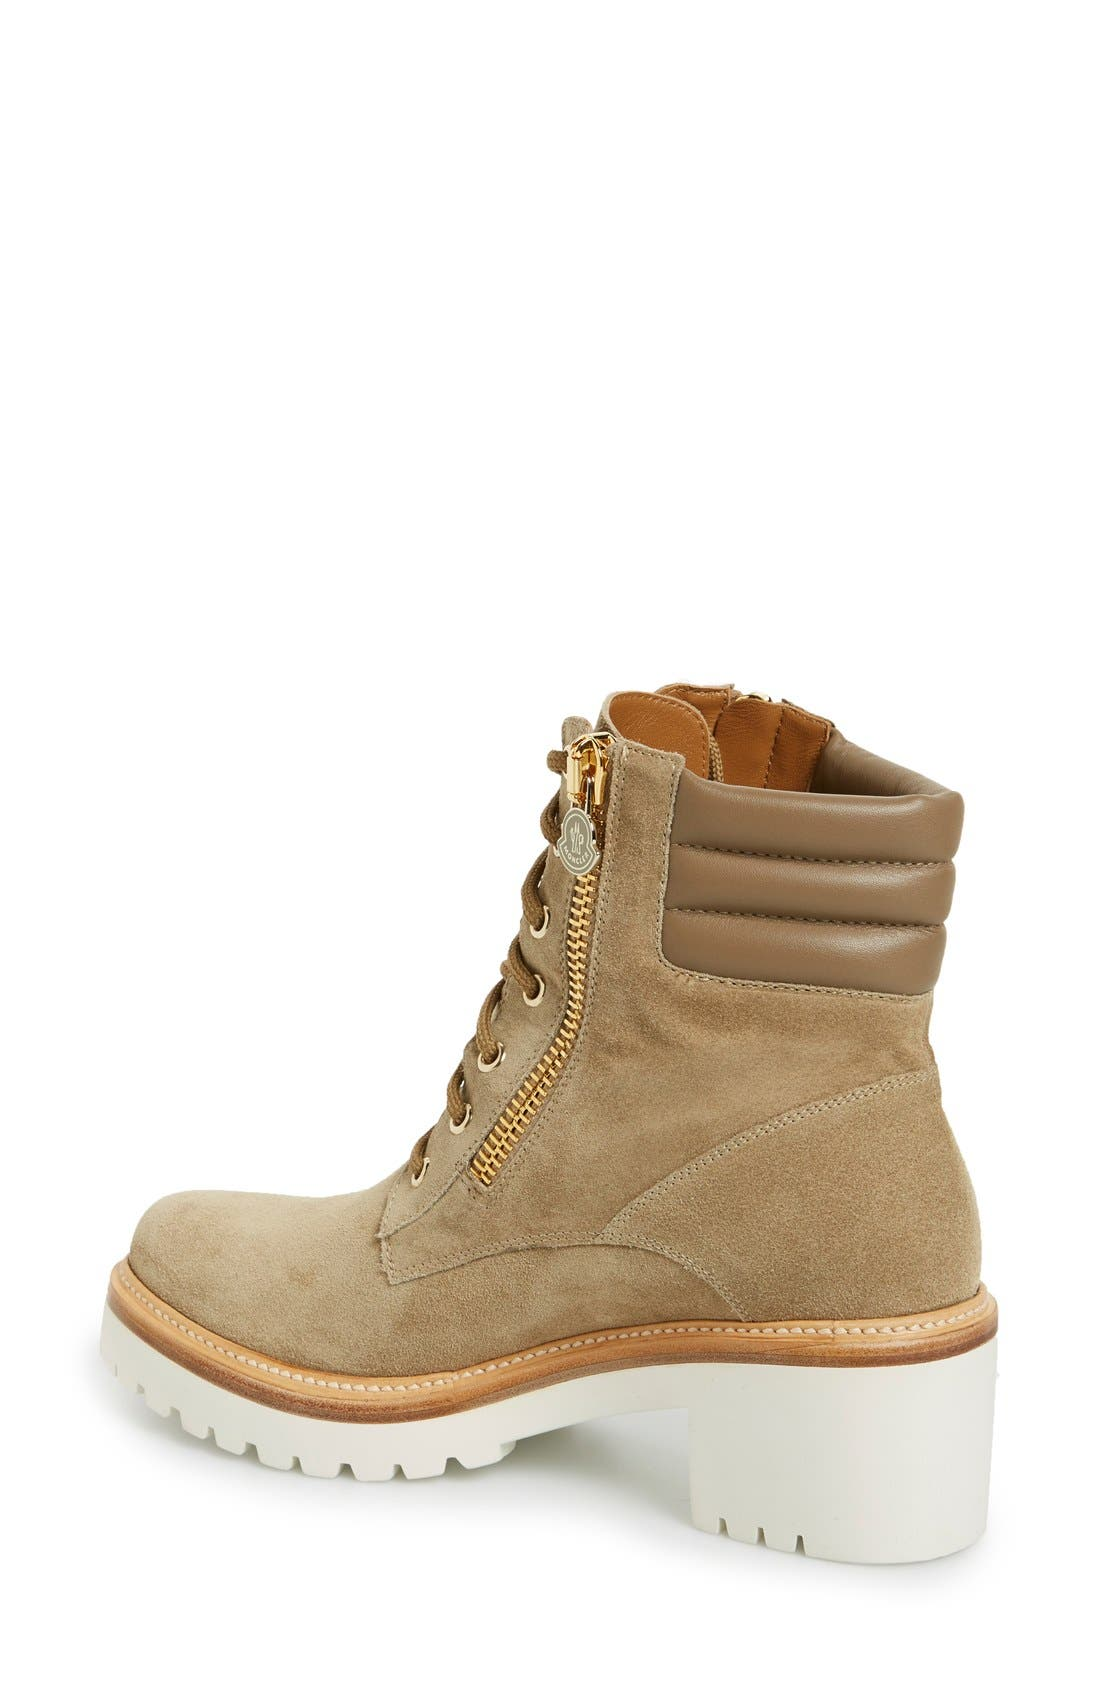 'Viviane' Hiker Boot,                             Alternate thumbnail 6, color,                             BROWN SUEDE CALFSKIN